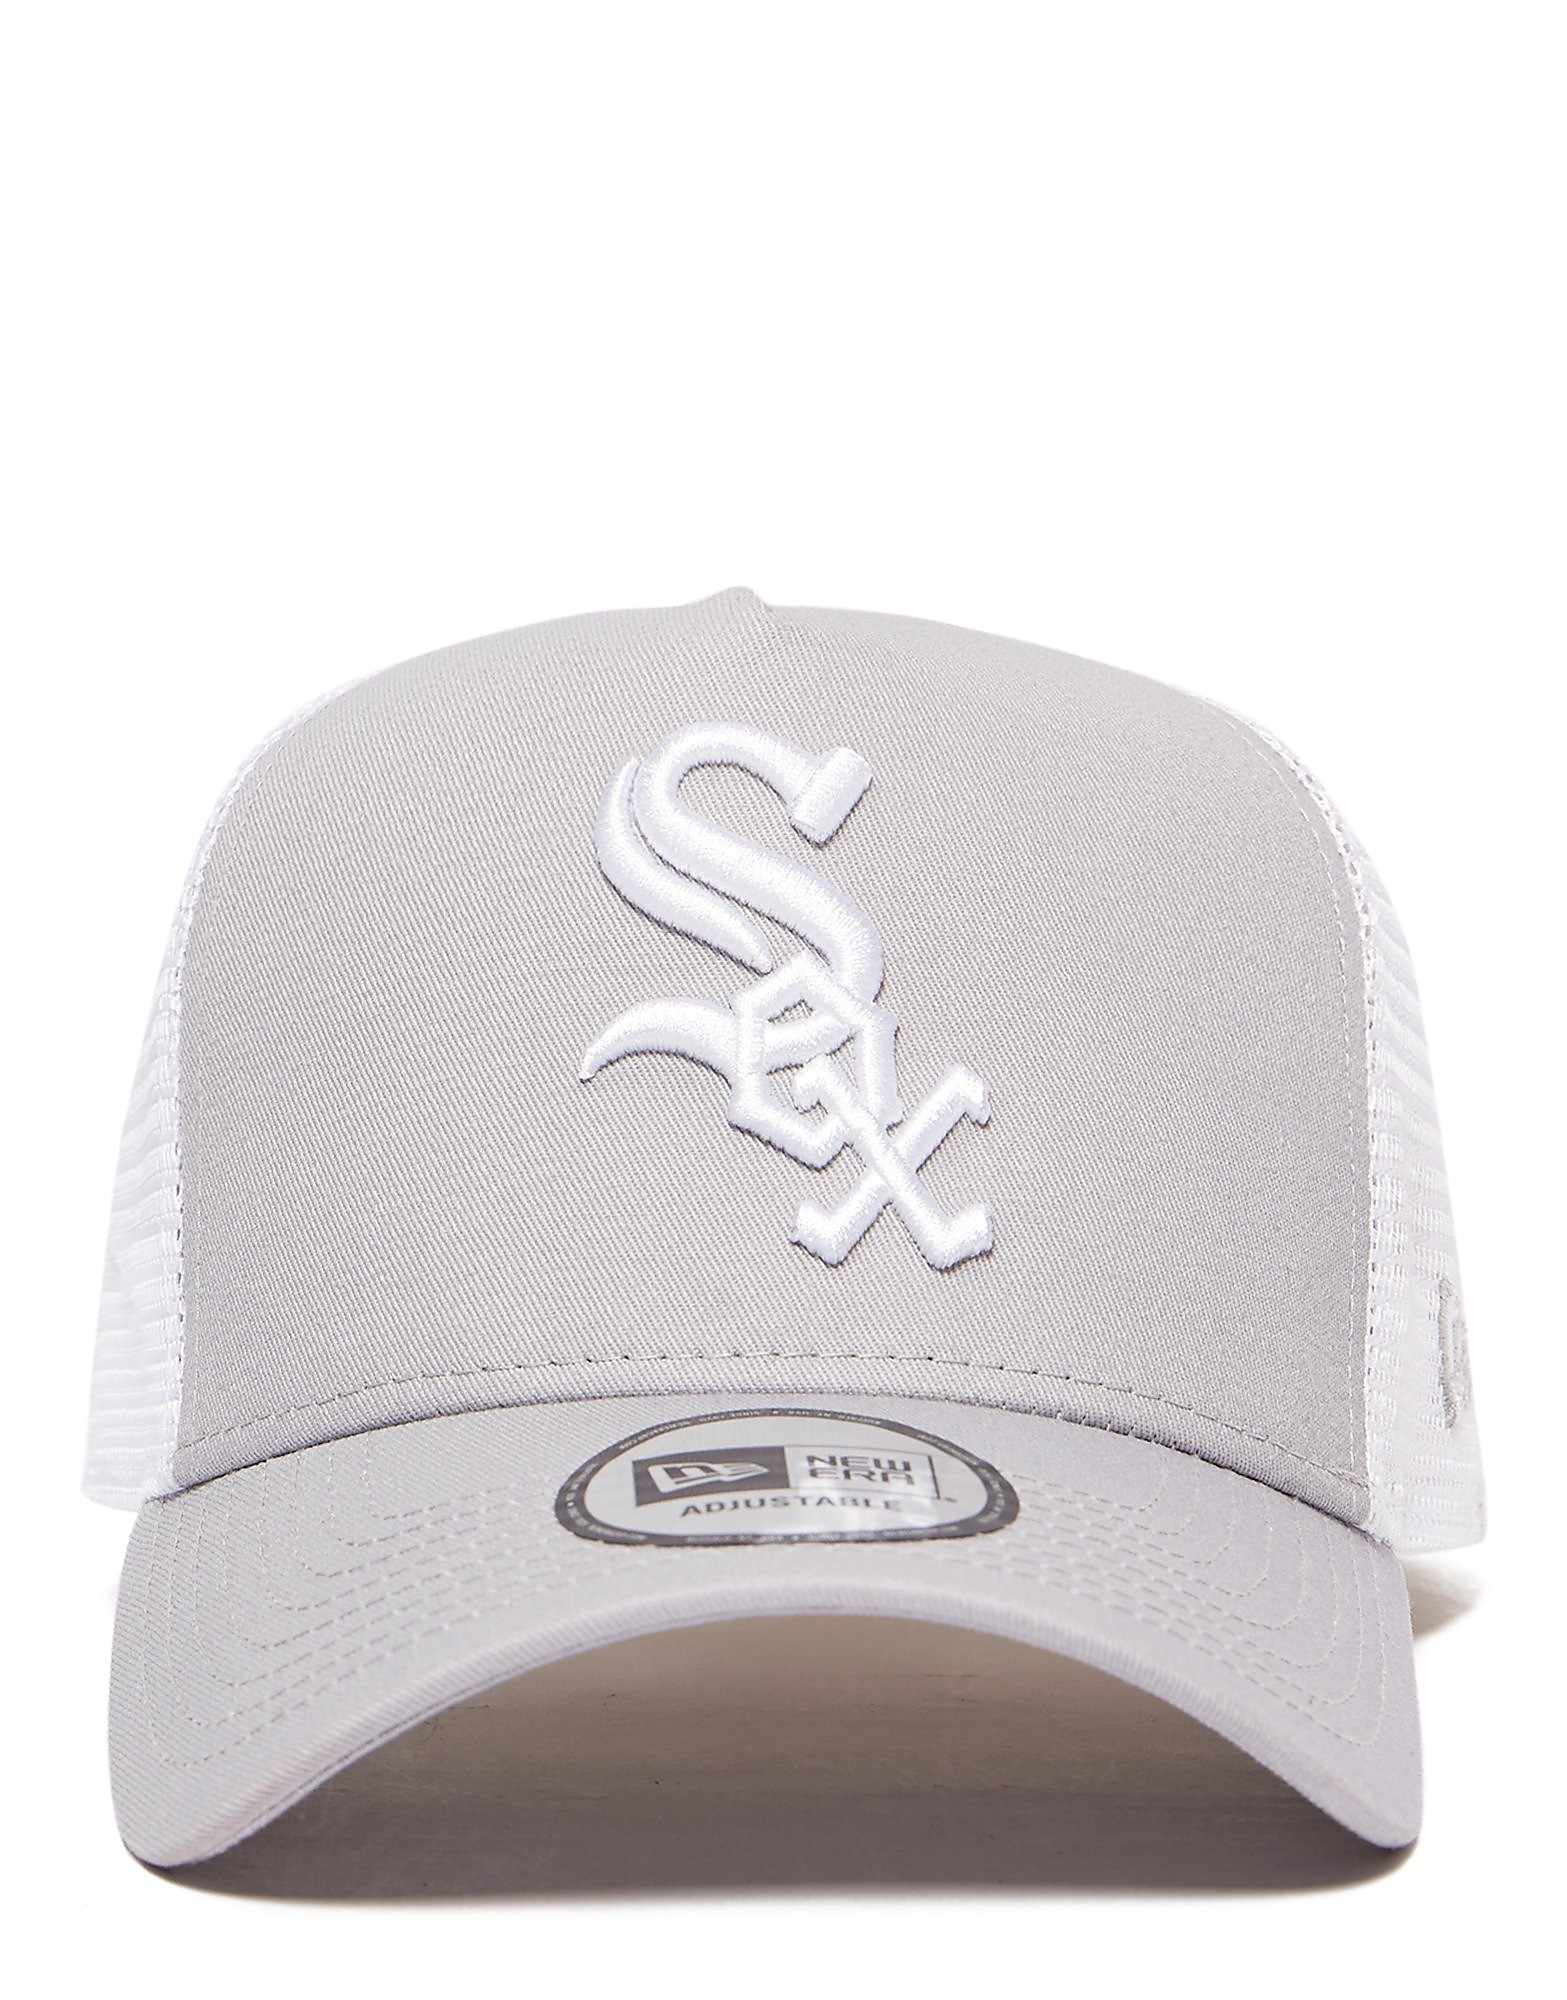 New Era Chicago White Sox Trucker Cappellino